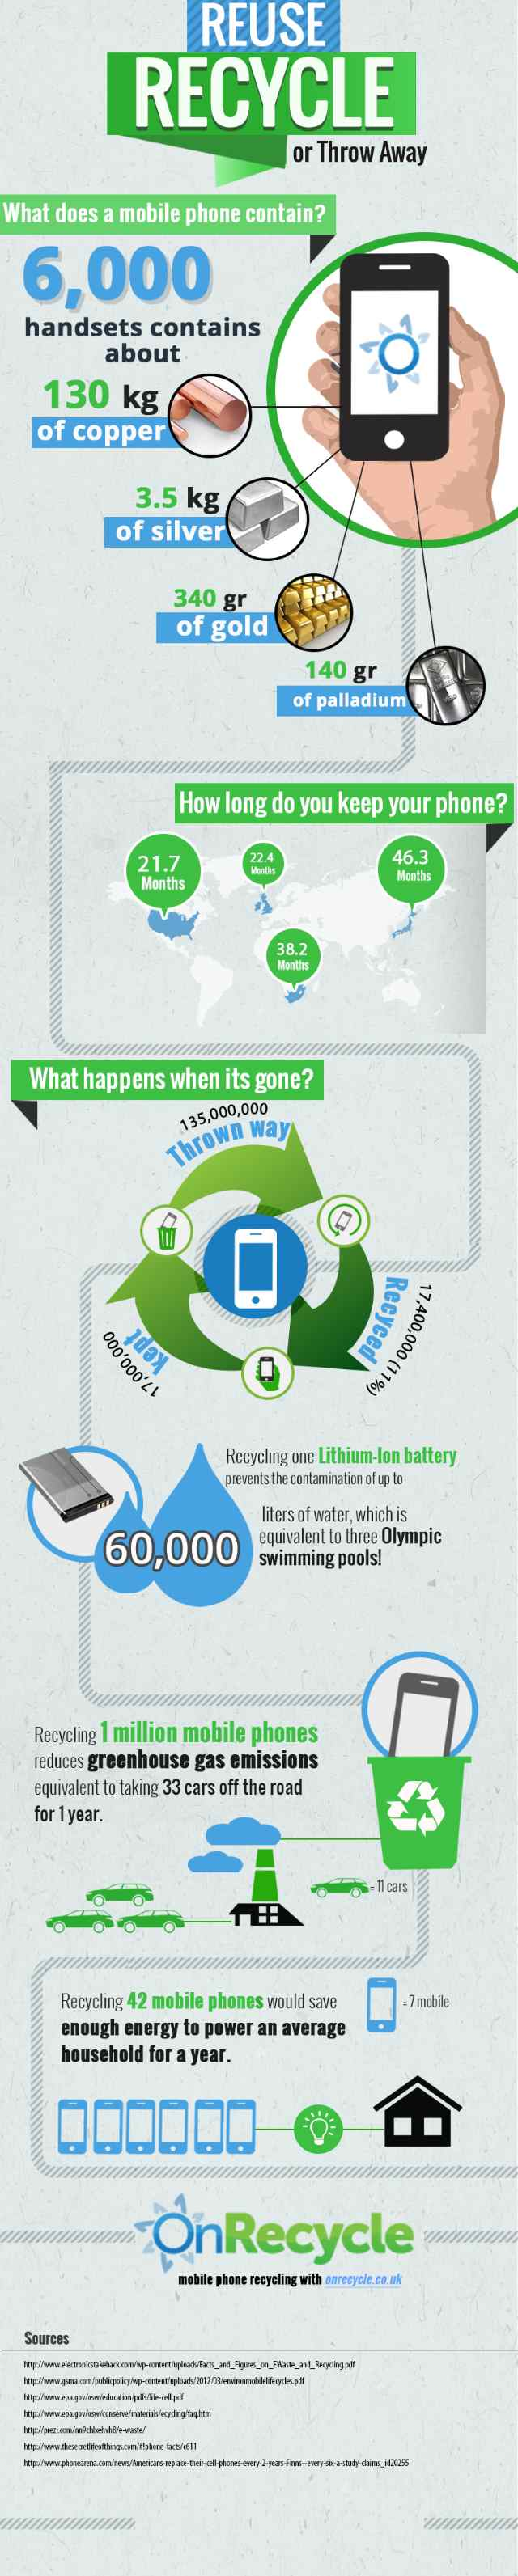 Infographic about recycling mobile phones - How Phone Users Waste Money